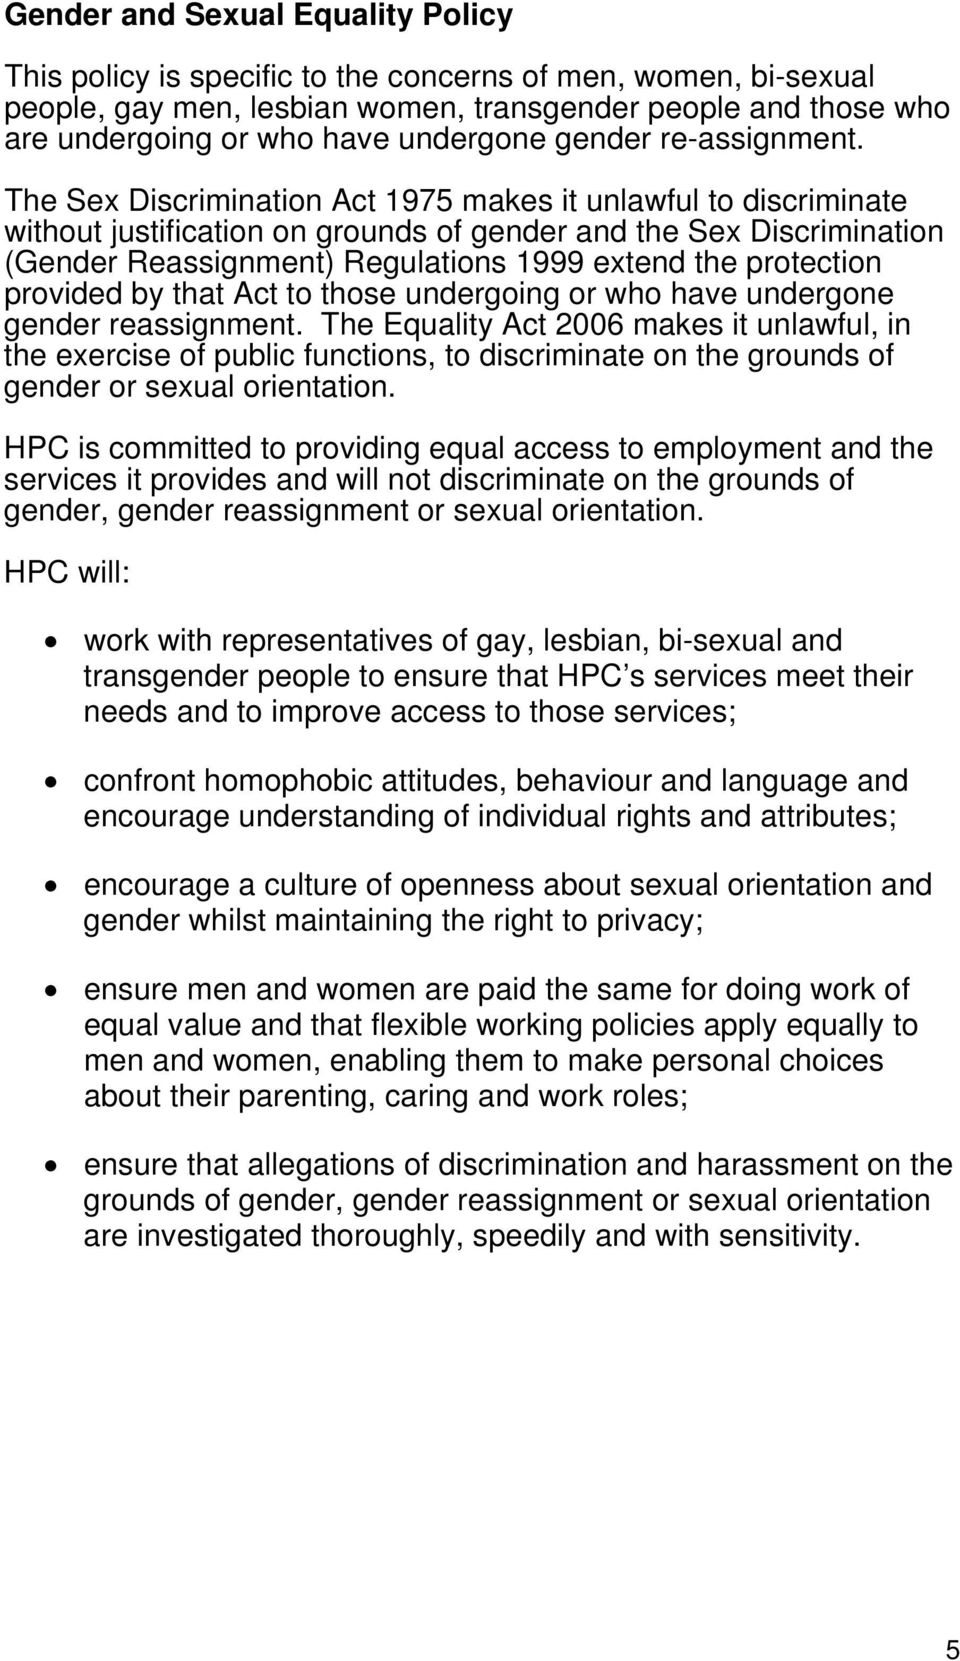 The Sex Discrimination Act 1975 makes it unlawful to discriminate without justification on grounds of gender and the Sex Discrimination (Gender Reassignment) Regulations 1999 extend the protection